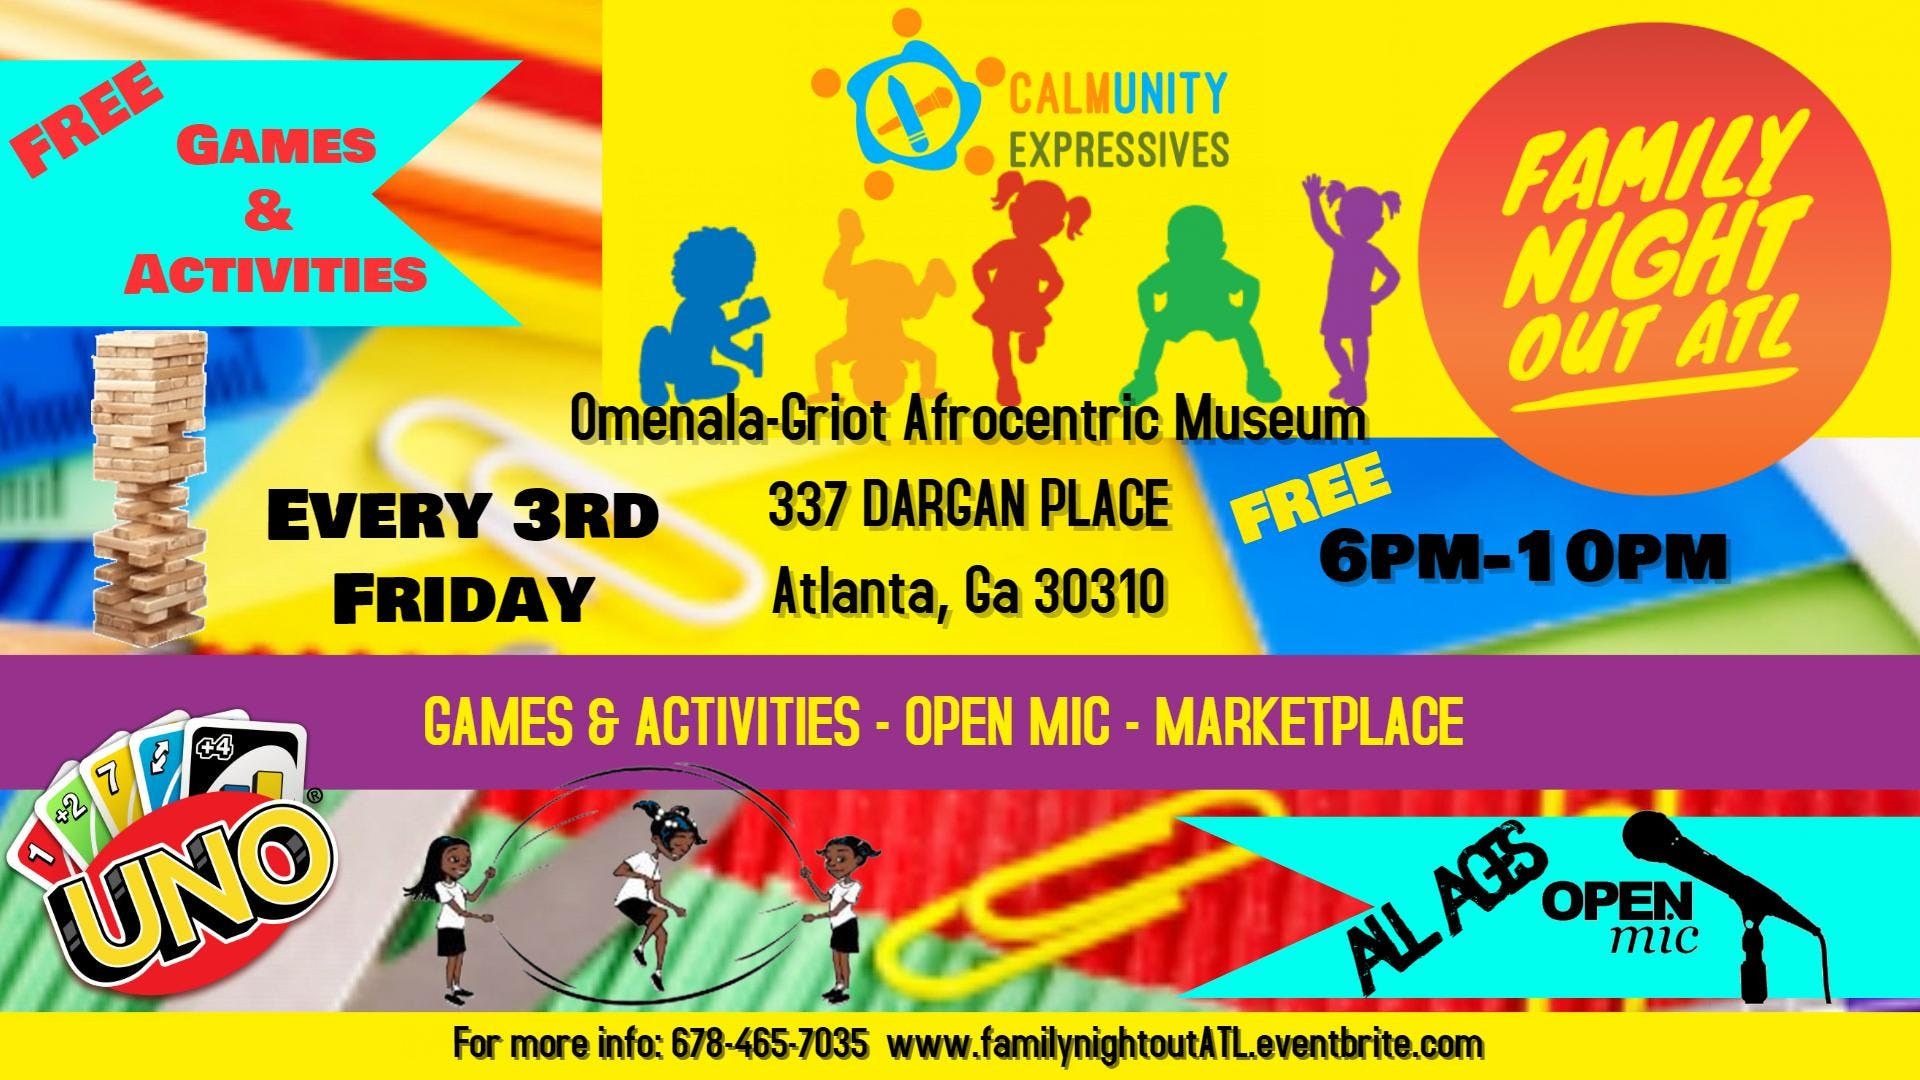 Family Night Out ATL Games Activities All Ages Open Mic